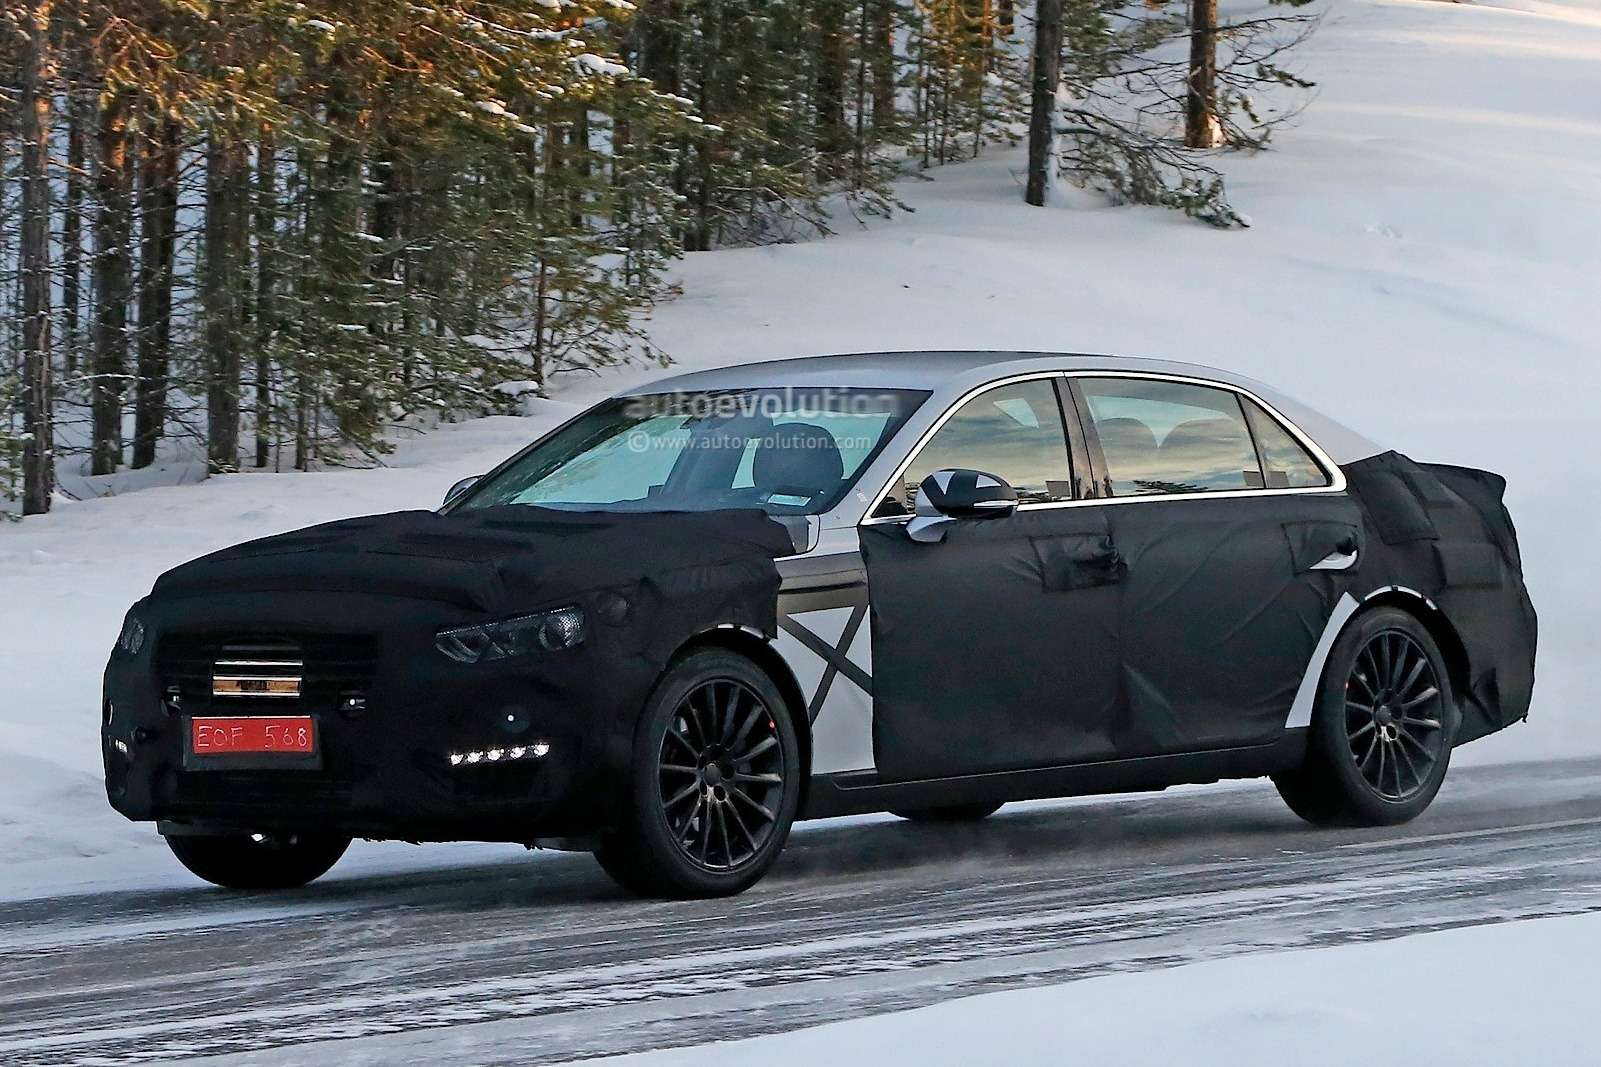 spyshots-2016-hyundai-equus-spied-with-s-class-inspired-taillights_2